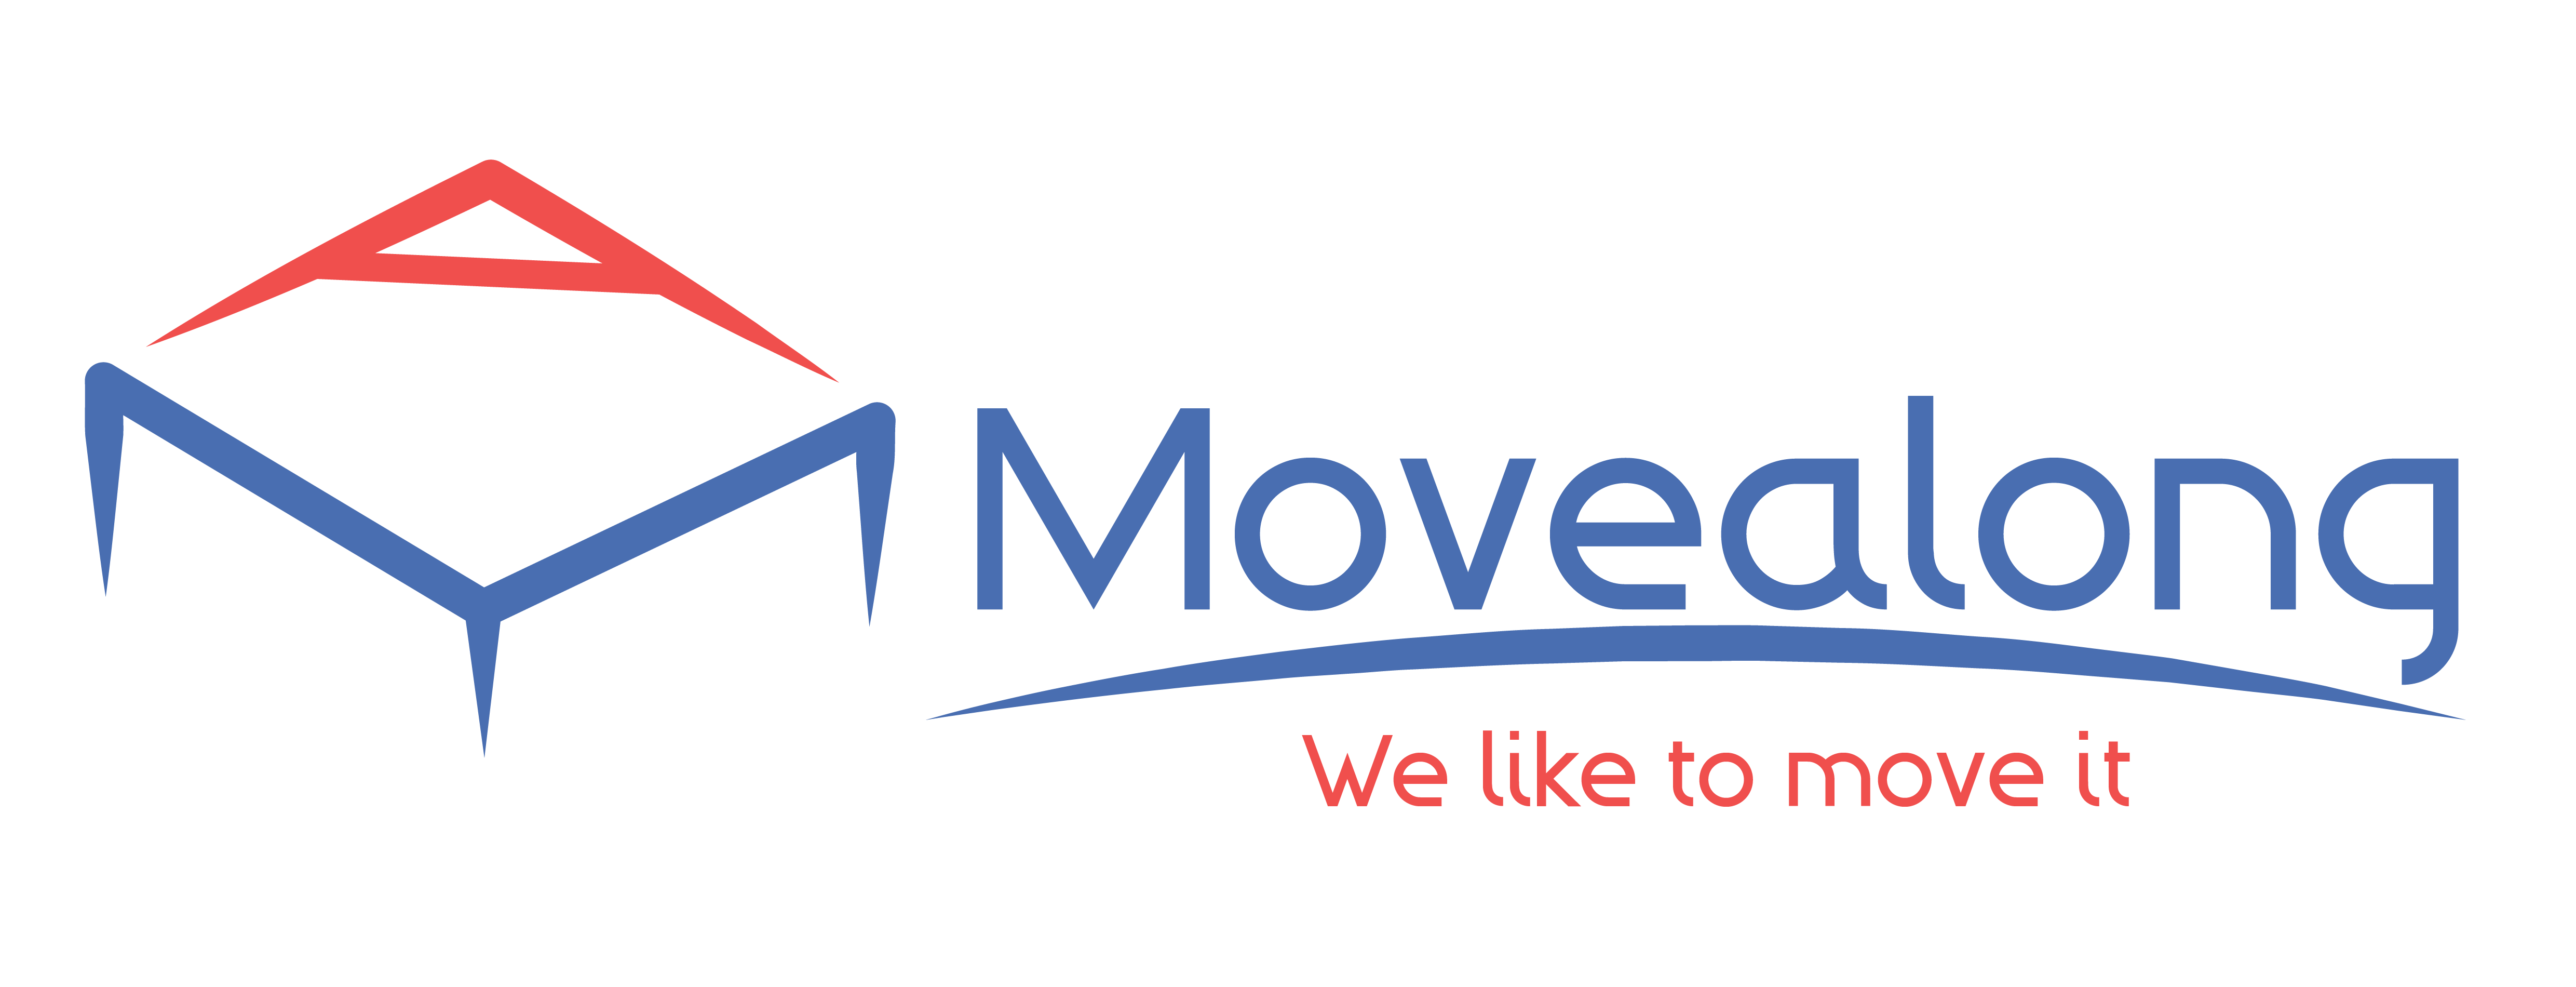 Movealong Furniture Removal, Transport & Logistics Company, Office Moves, Shareloads, Self Storage